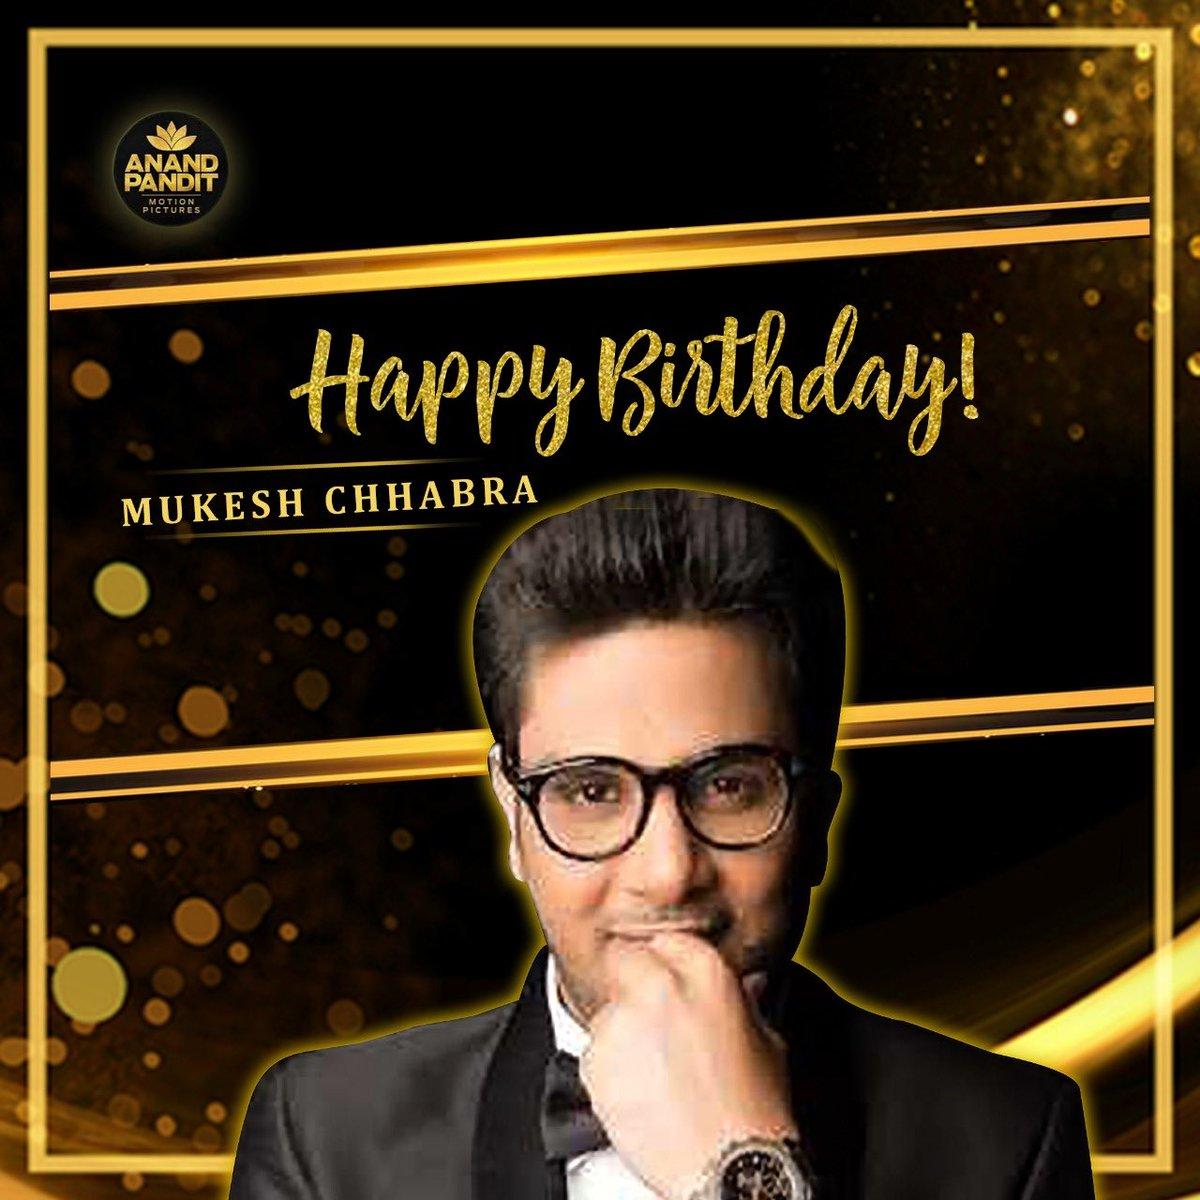 Happy Birthday, @CastingChhabra , you have been that magician who has made dreams come true for so many who had wanted to be a part of the big screen!  Have a rocking birthday! #HappyBirthdayMukesh https://t.co/Bie38VPRtY